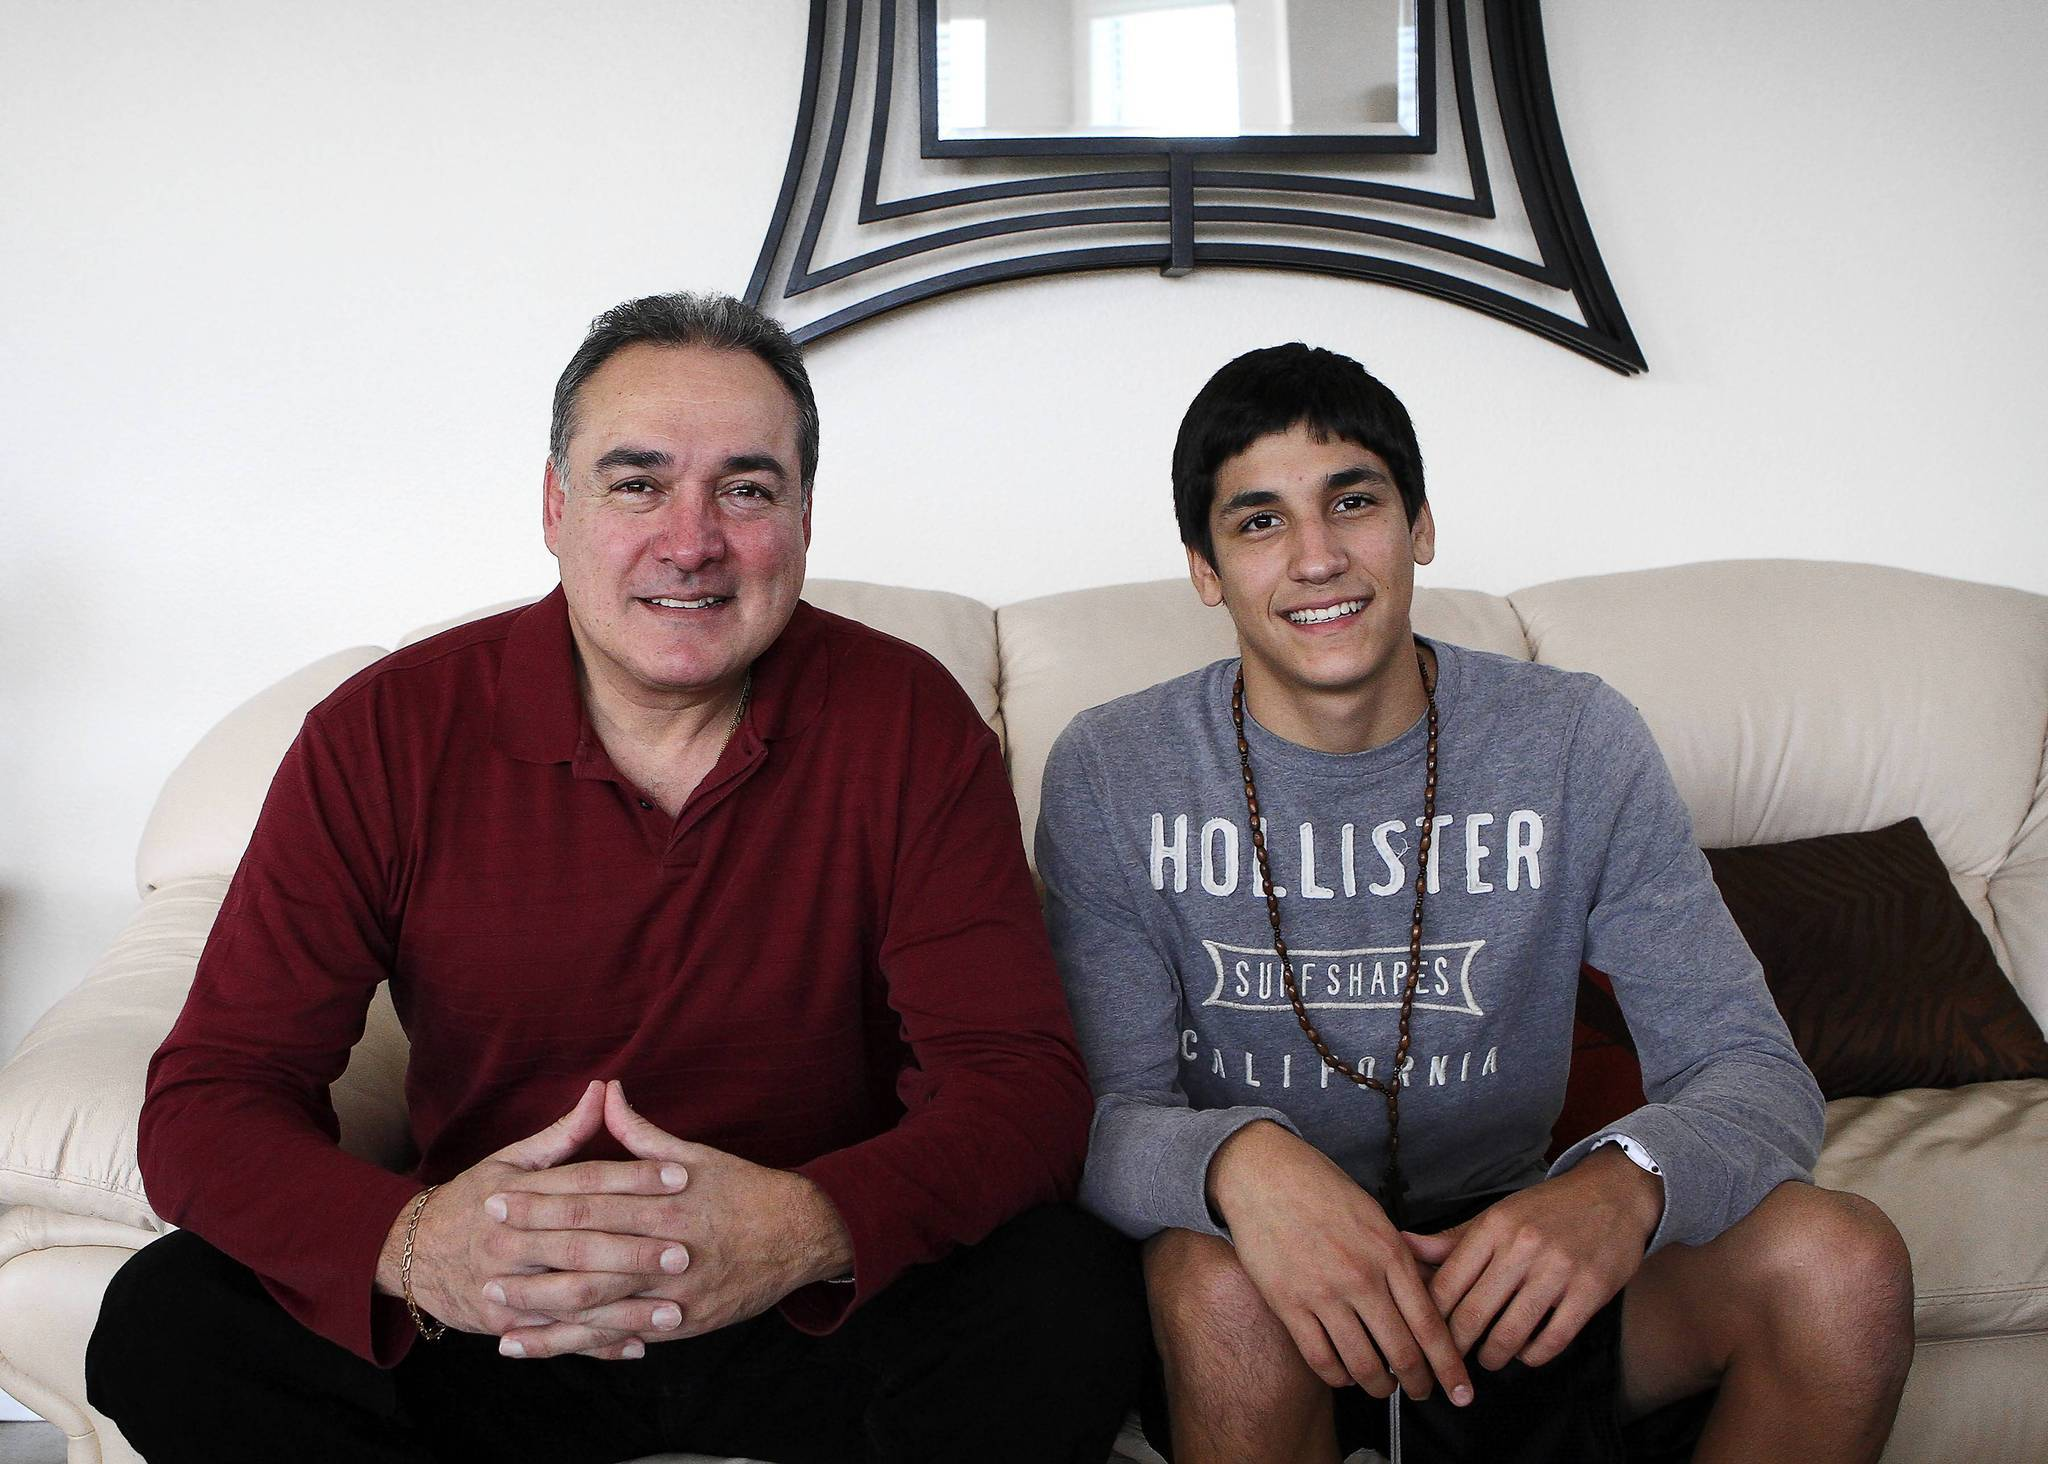 Armando Calle, left, and his son Jesus Calle, 15, at their Orlando home on November 20, 2012. Jesus and his sister Monique will be among the 161,000 American-born Hispanics in Metro Orlando who will contribute to the doubling of the Hispanic electorate in the U.S.